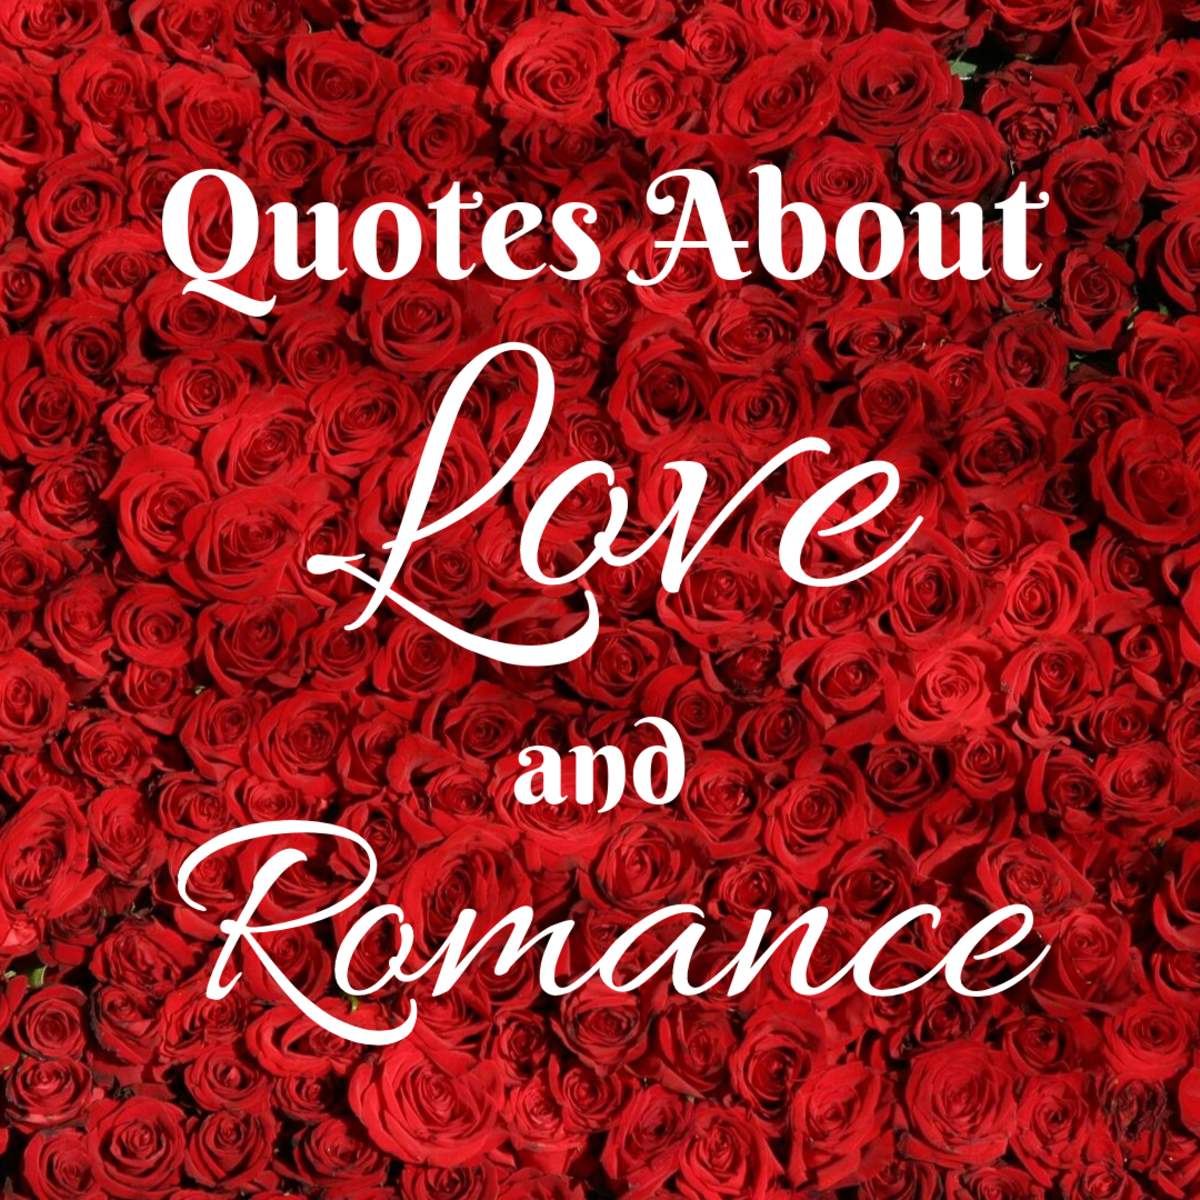 Read through some famous (and original) quotes related to love and the expression of romance.